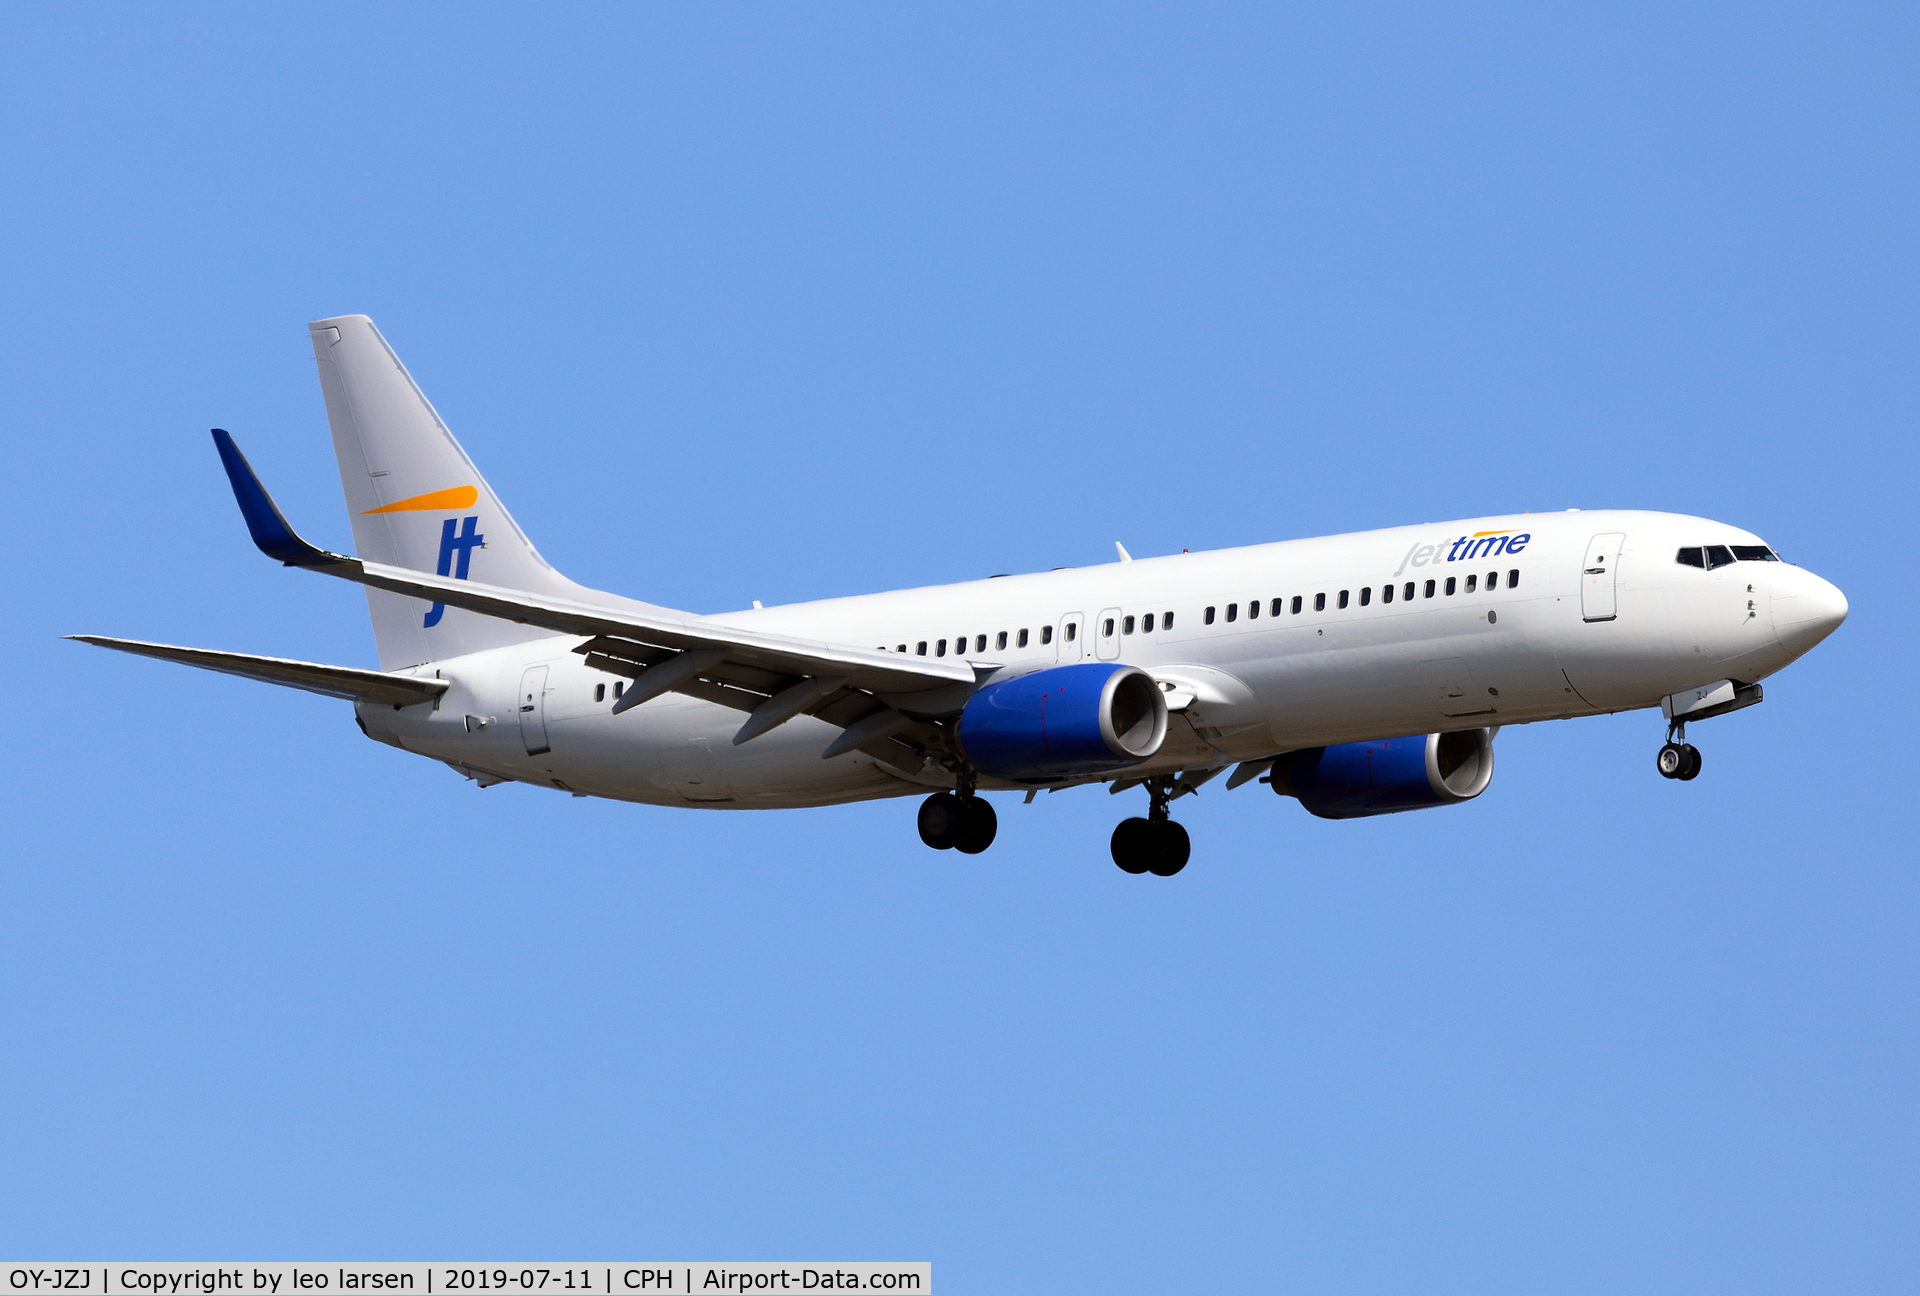 OY-JZJ, 2003 Boeing 737-82R C/N 30658, Copenhagen 11.7.2019 on final to R-22L